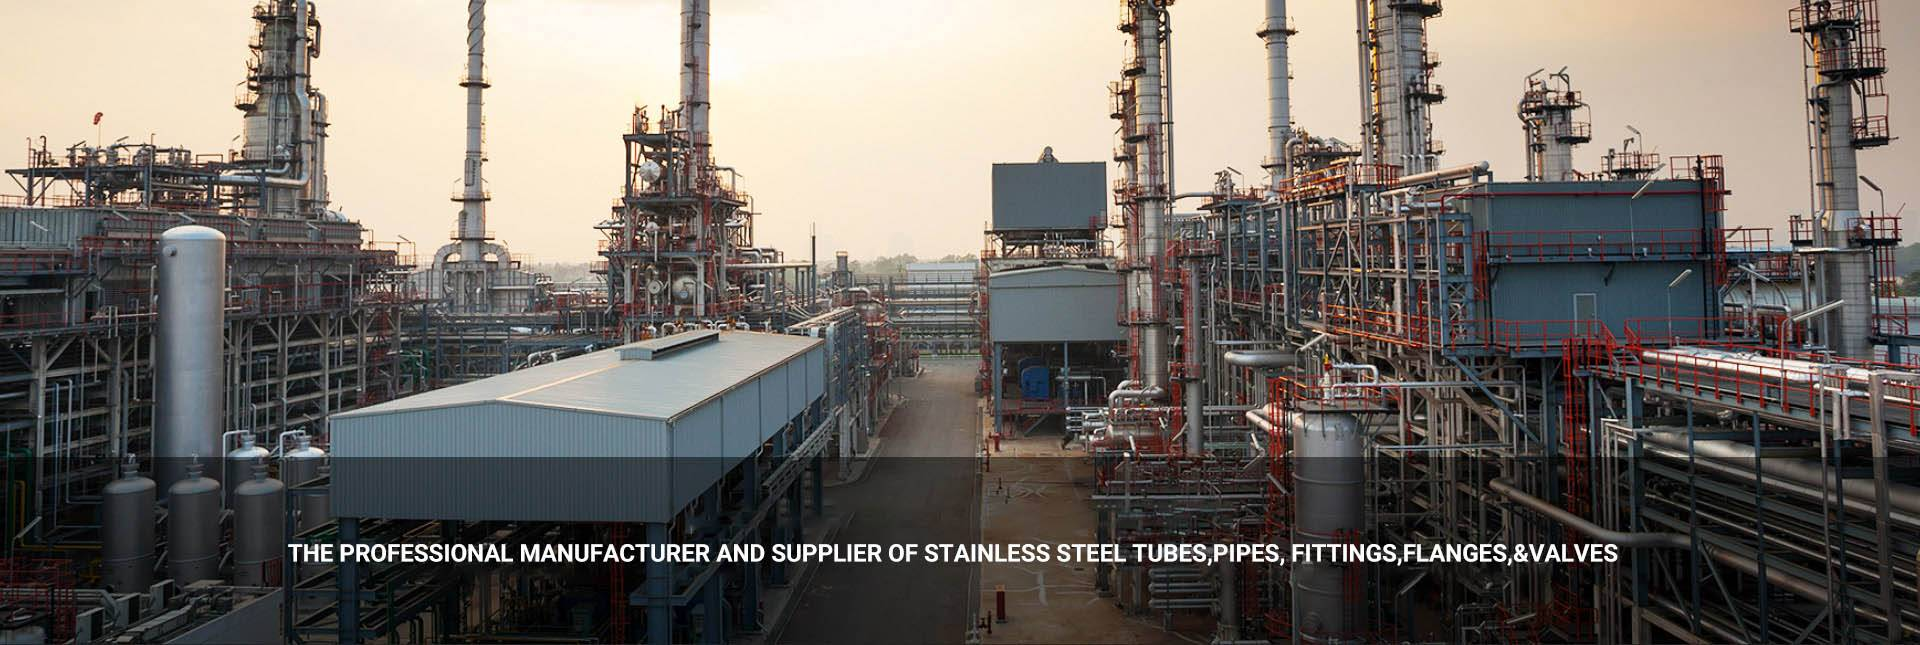 THE PROFESSIONAL MANUFACTURER AND SUPPLIER OF STAINLESS STEEL TUBES,PIPES, FITTINGS,FLANGES,&VALVES